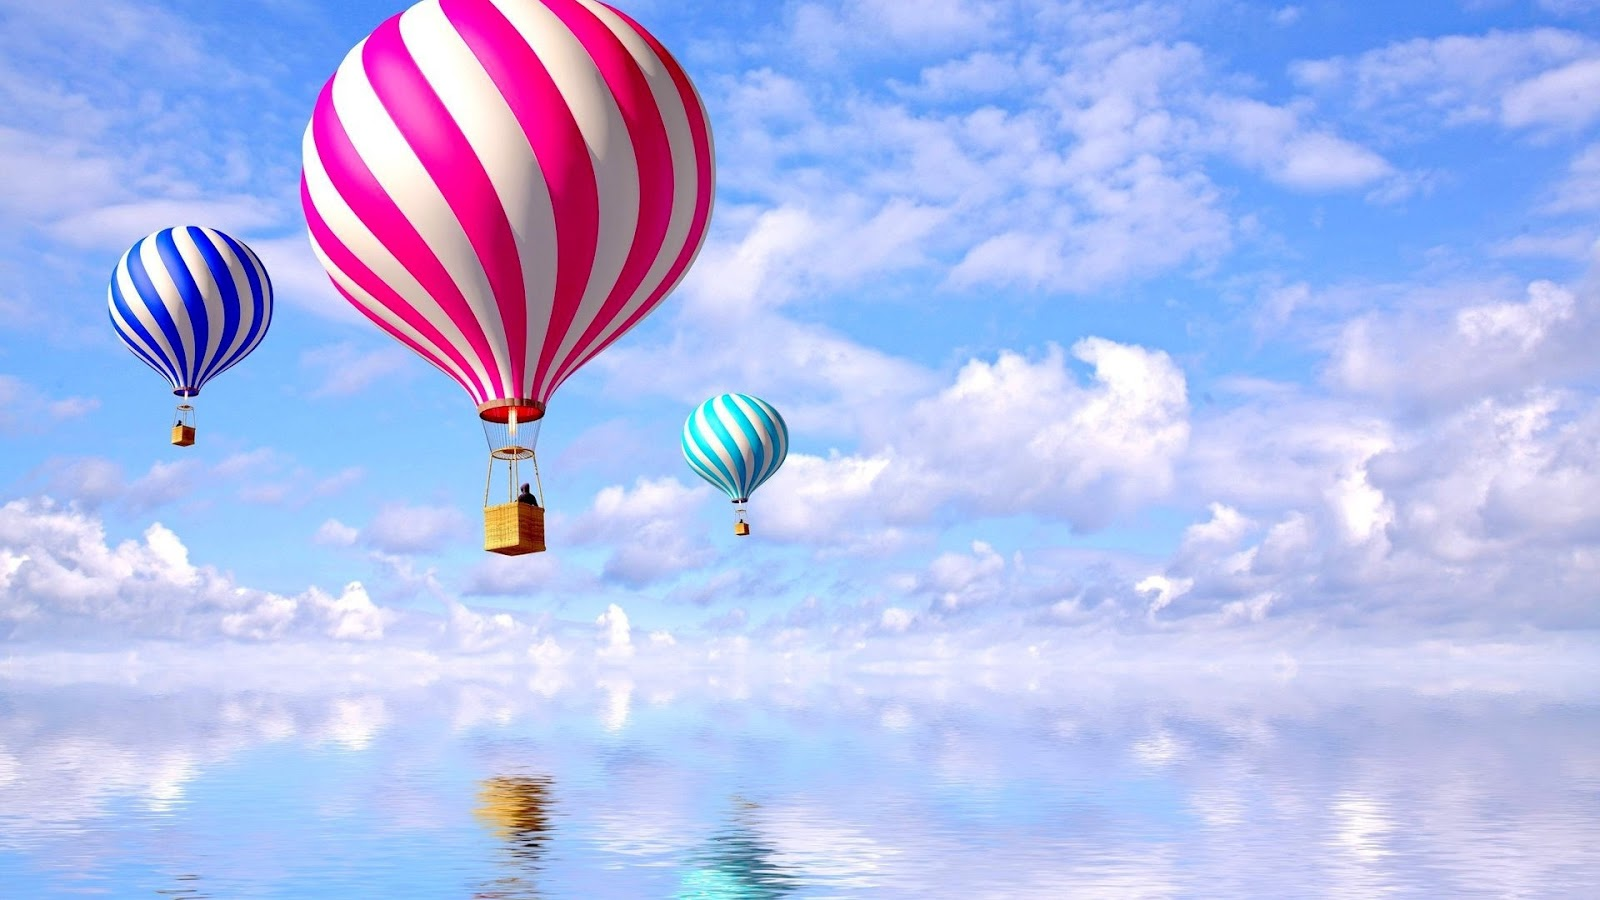 balloons background wallpaper-#18